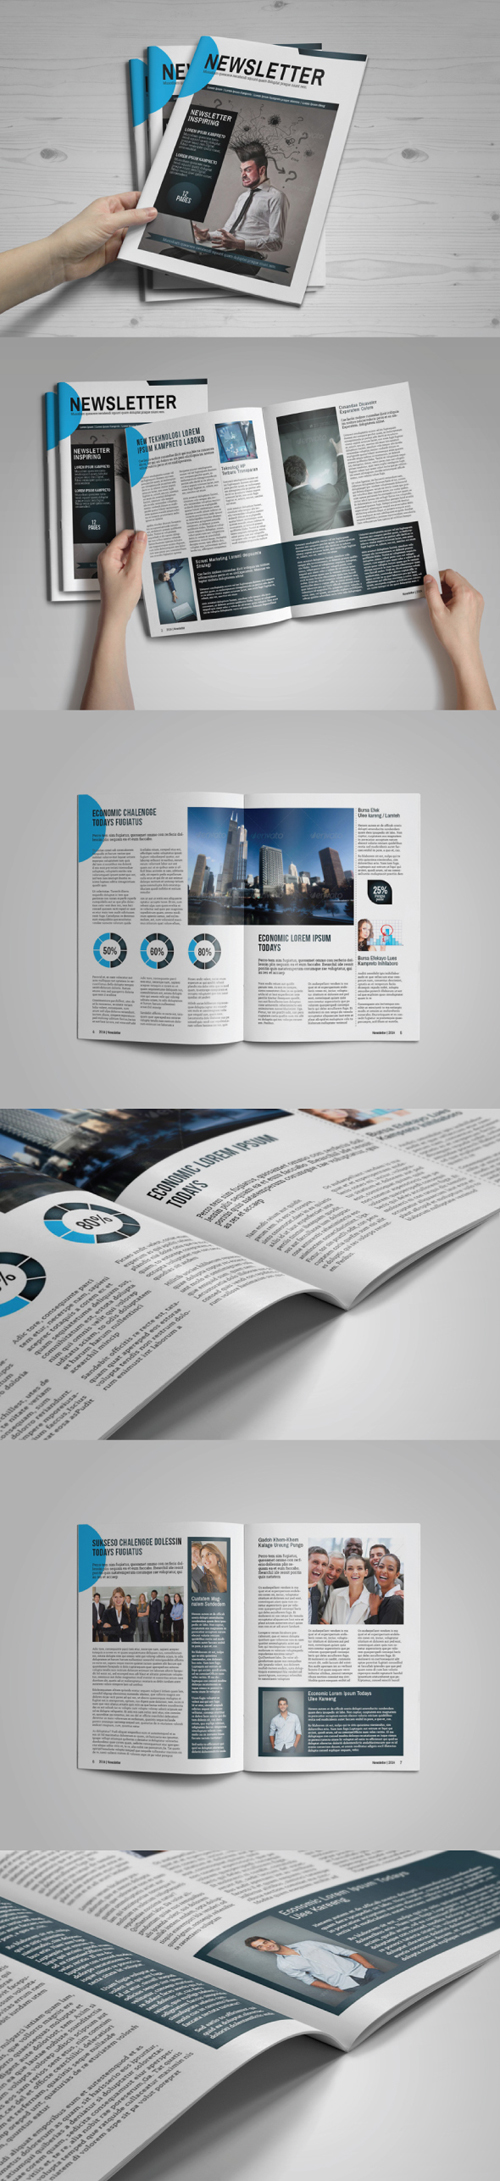 Multipurpose Newsletter Brochure Template